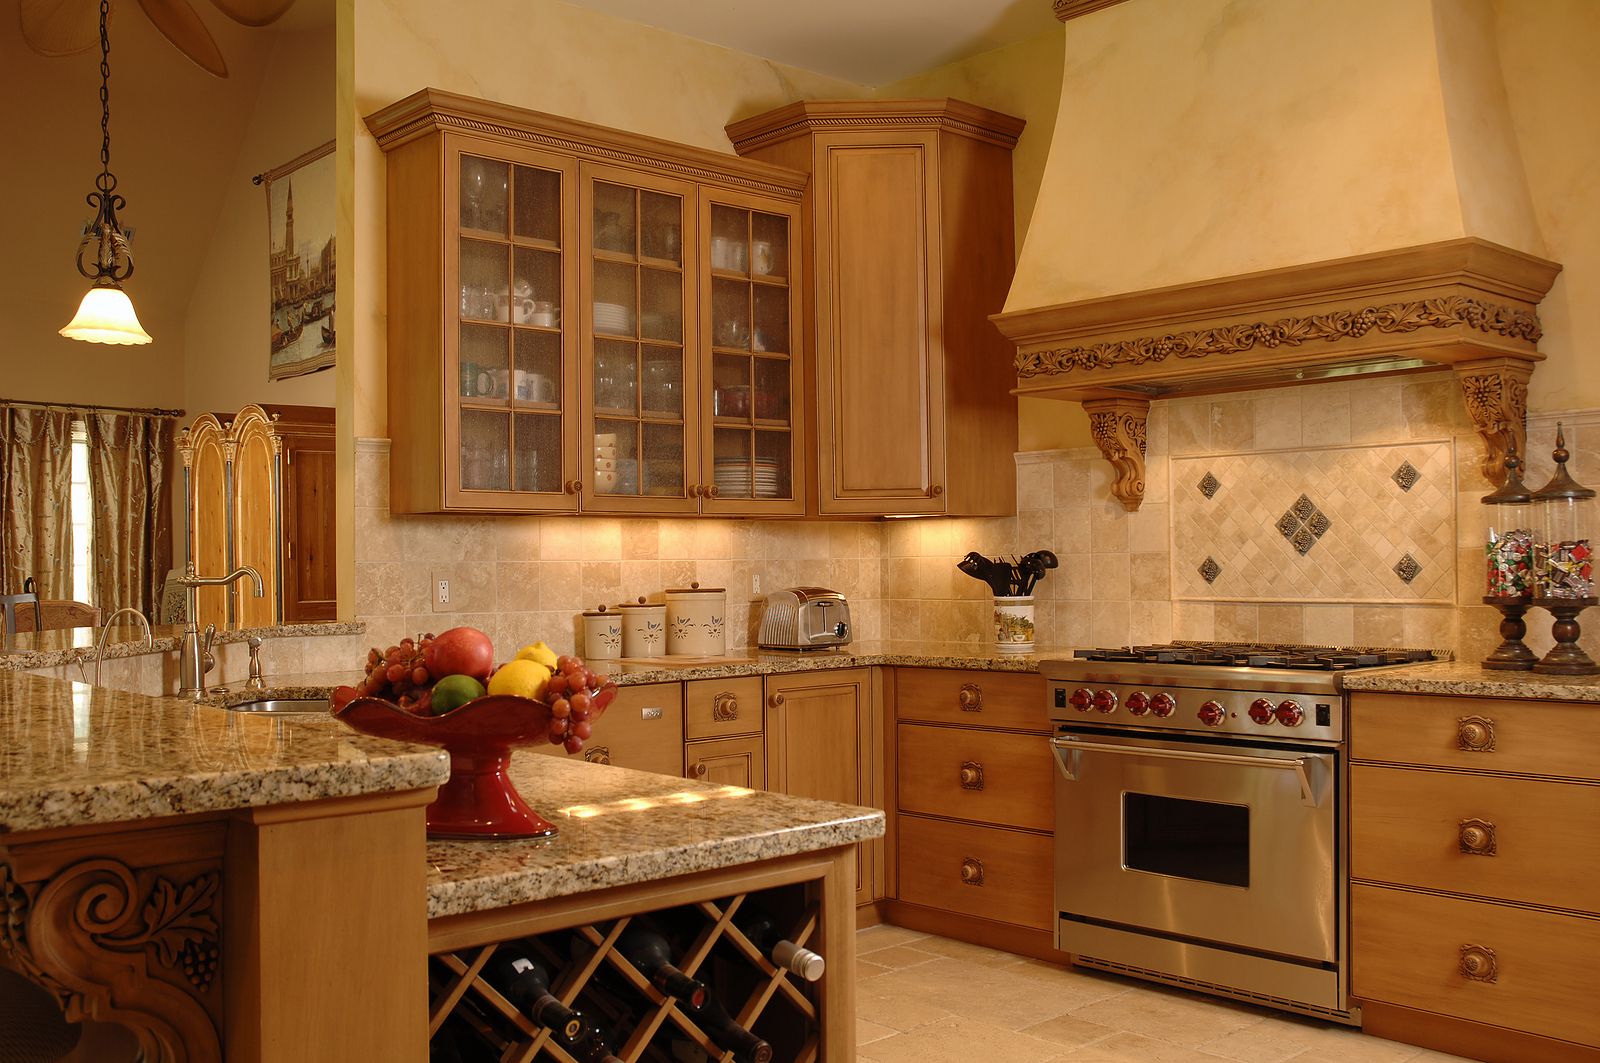 Kitchen Tiles Designs New Of Italian Kitchen Design Ideas Pictures